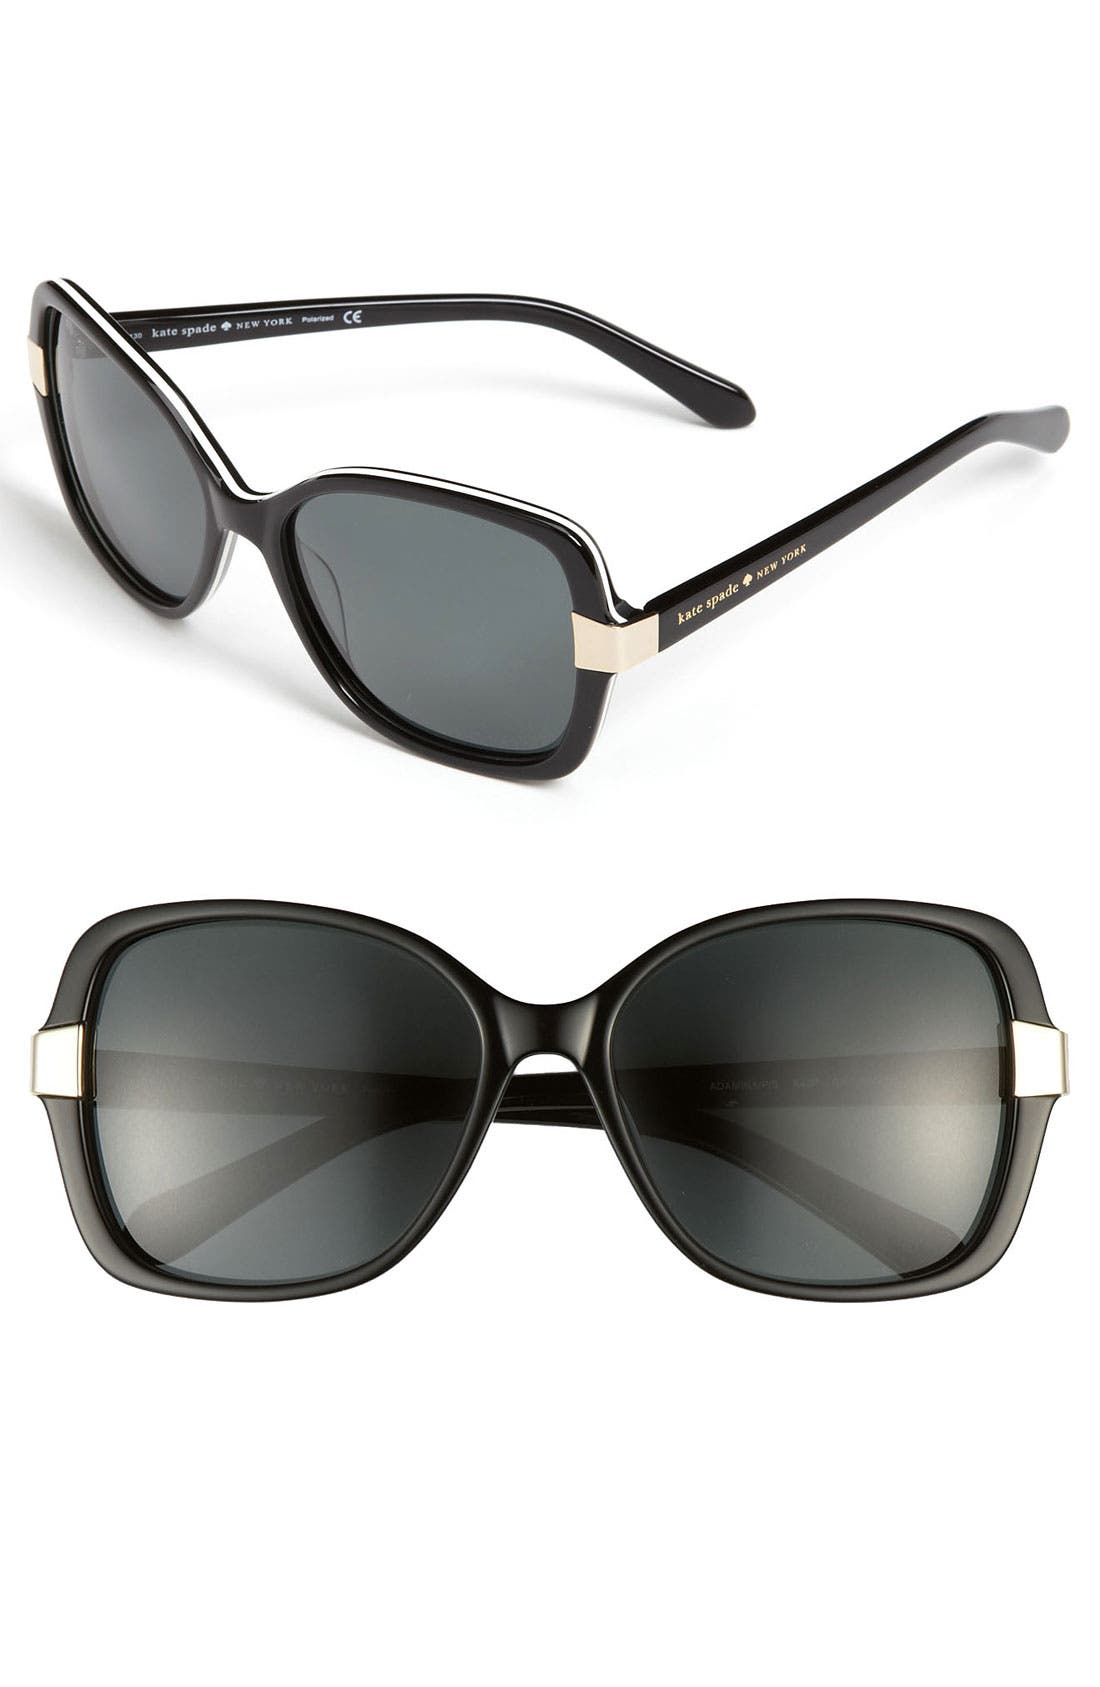 Alternate Image 1 Selected - kate spade new york 'adamina' 56mm oversized polarized sunglasses